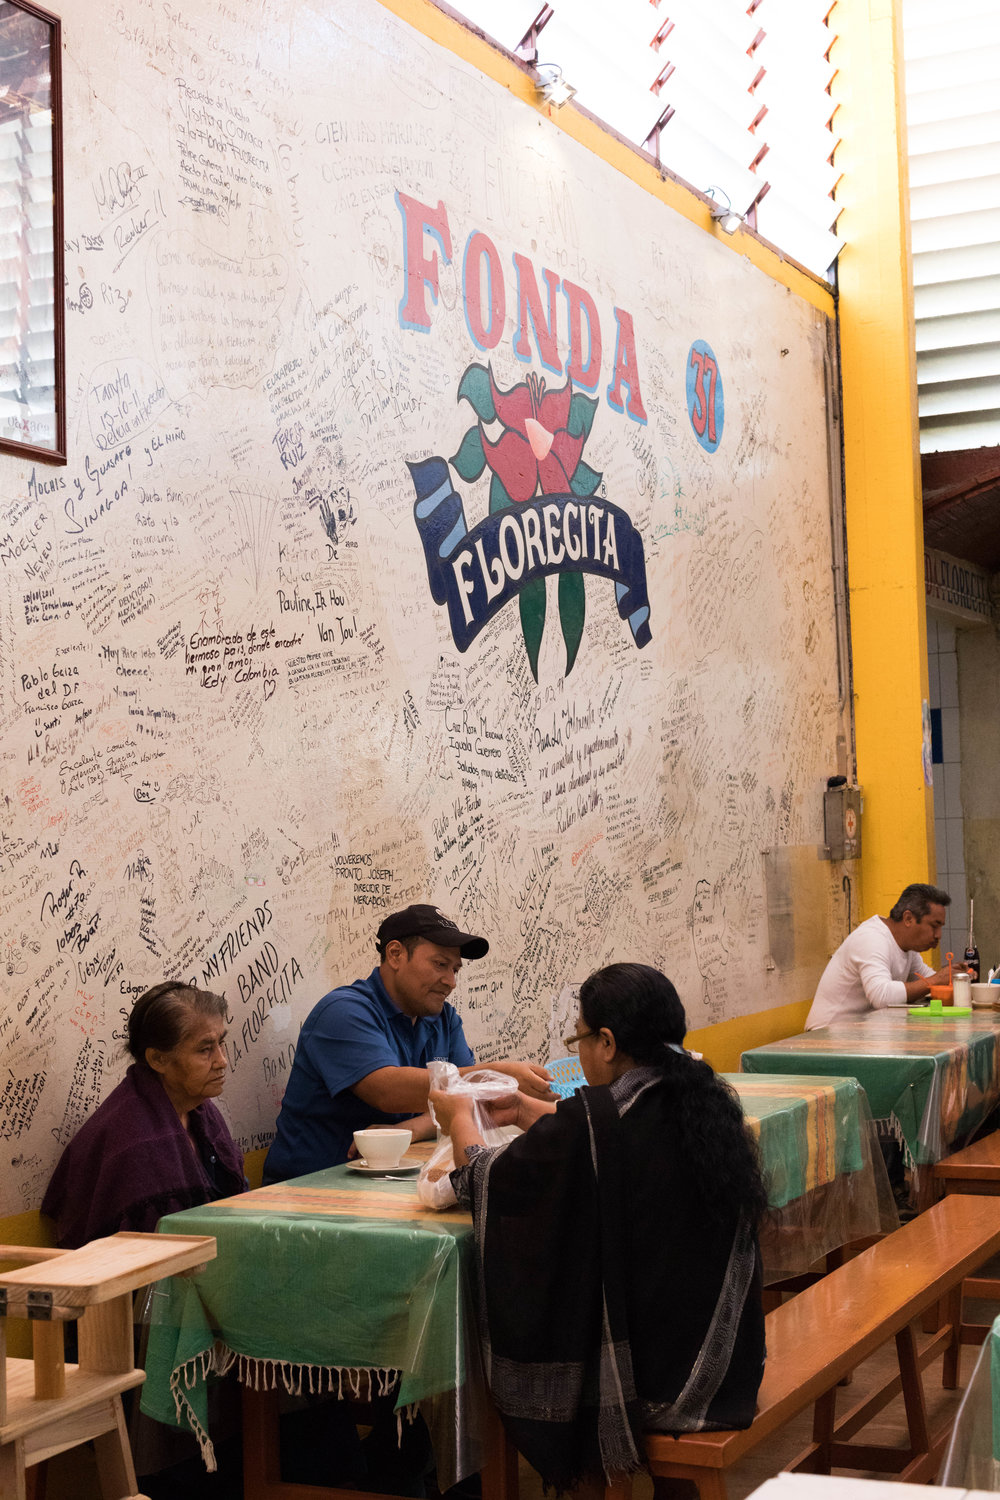 Locals eating at Fonda Florecita